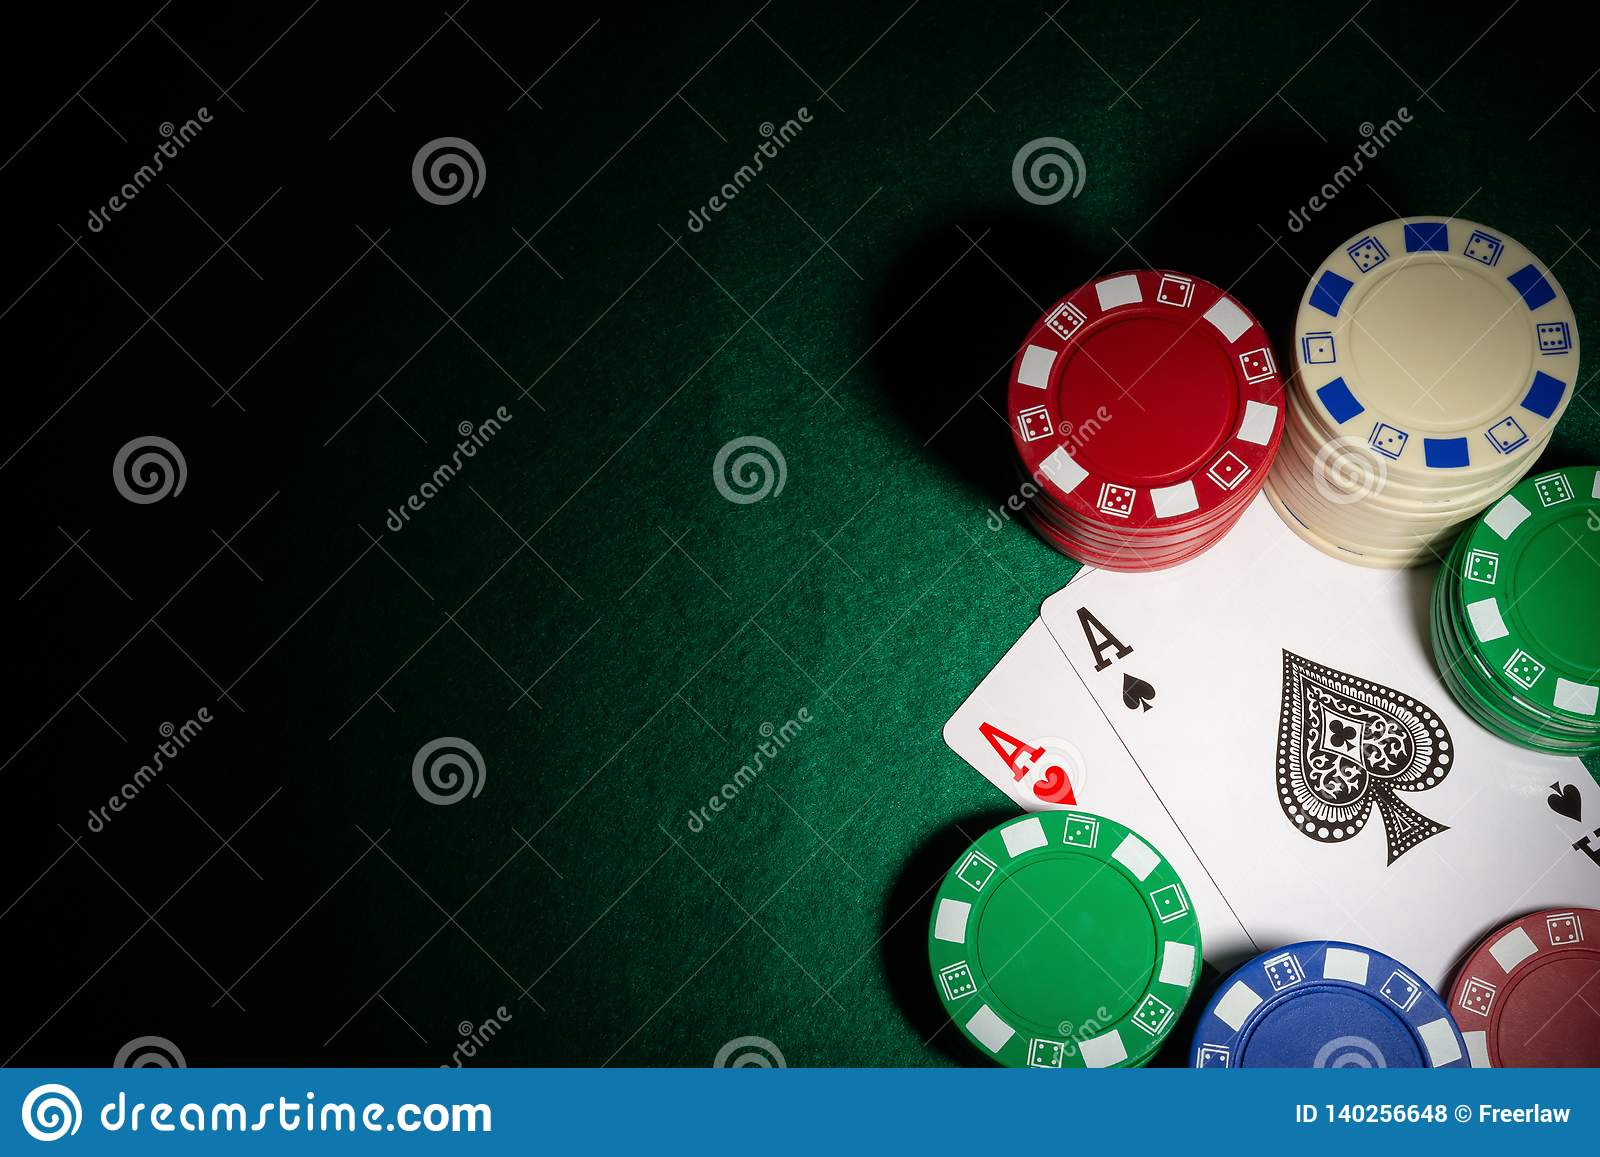 Highlighted two Ace of pokers between gambling chips on casino table